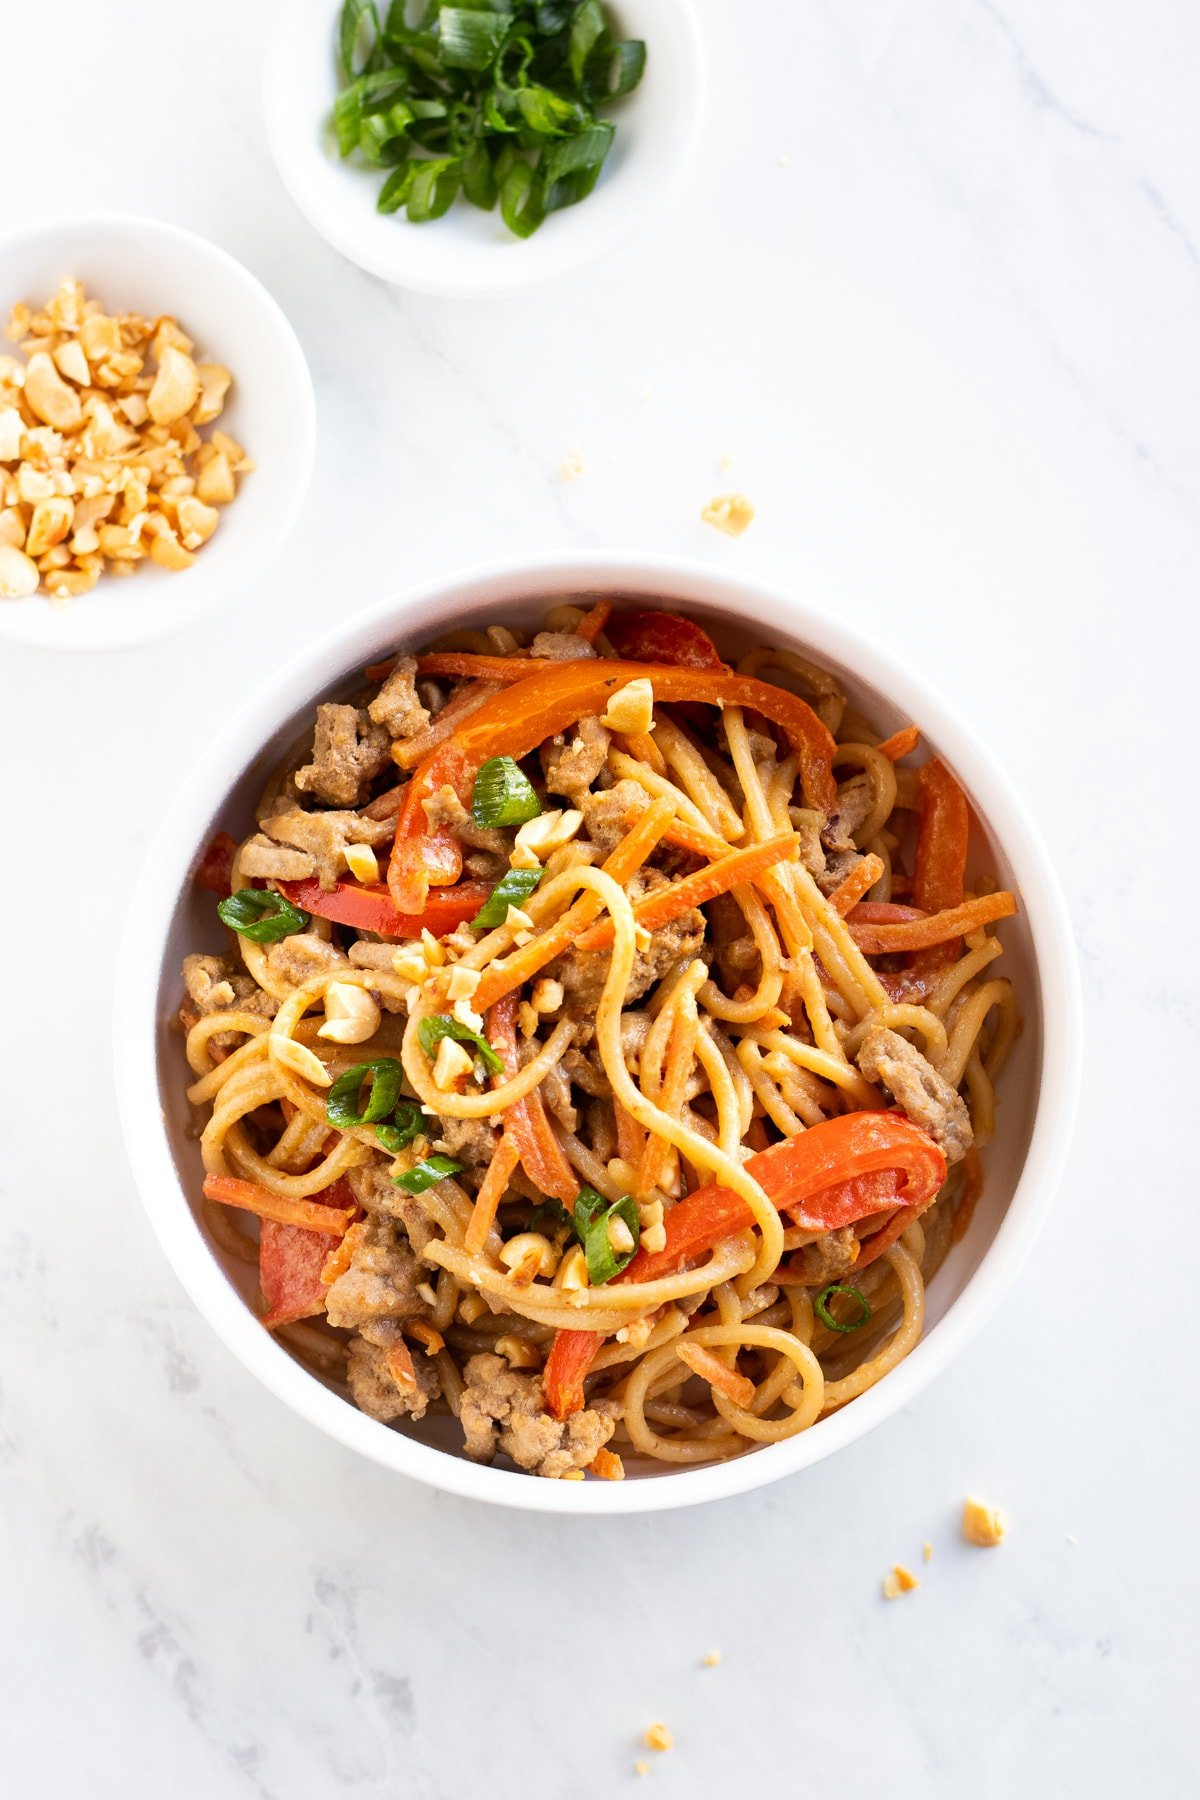 Looking down at a bowl of noodles coated with a light peanut sauce and mixed with carrot matchsticks, red pepper slices, and ground turkey.